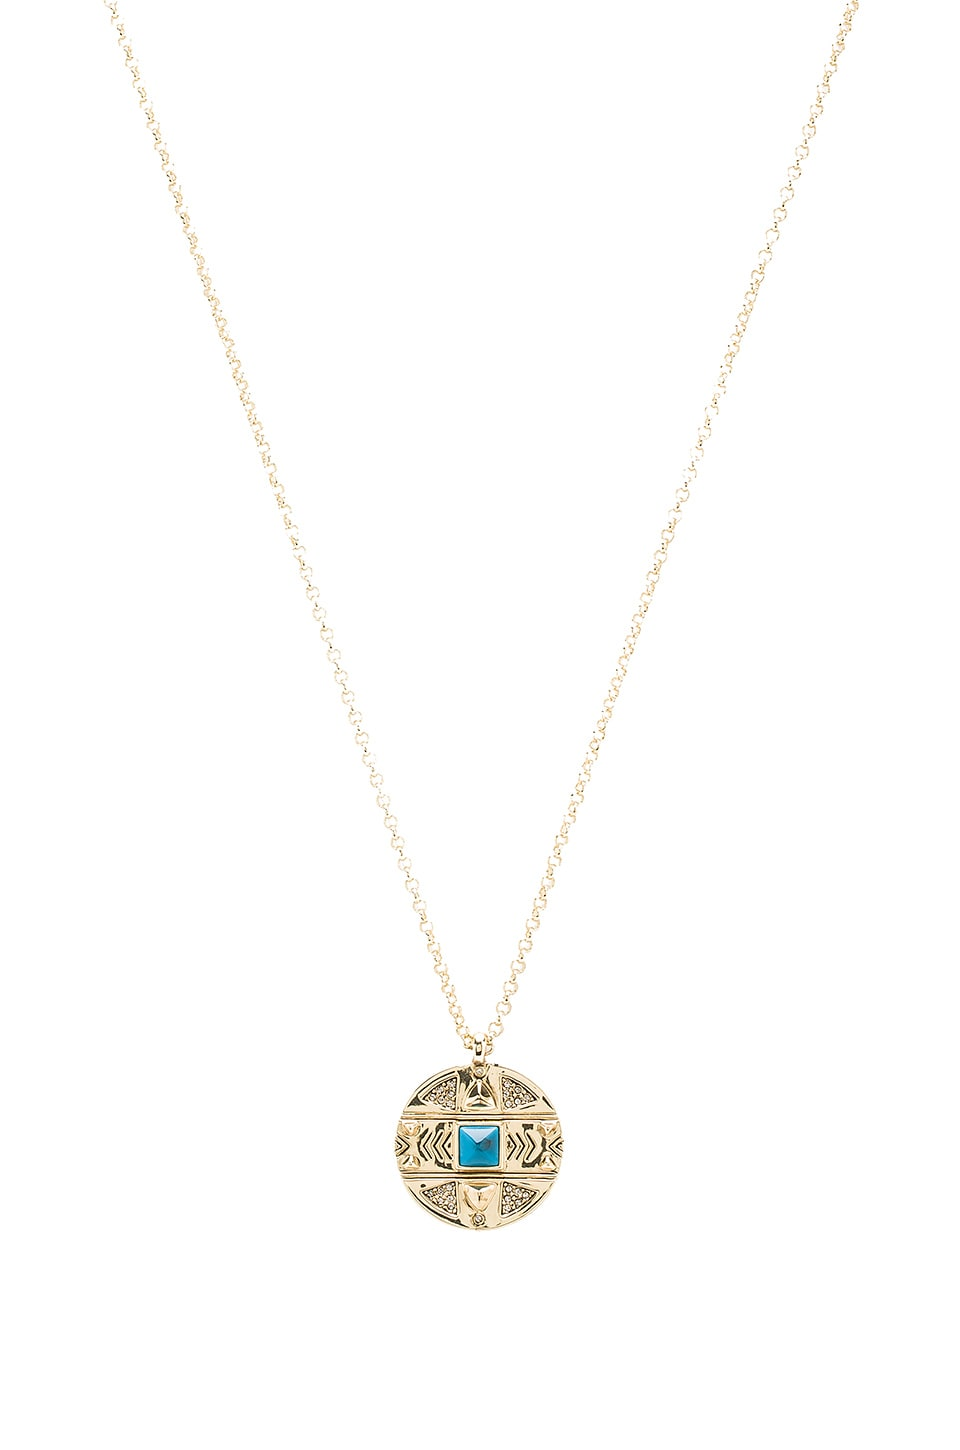 House of Harlow 1960 House of Harlow Maricopa Coin Pendant Necklace in Gold